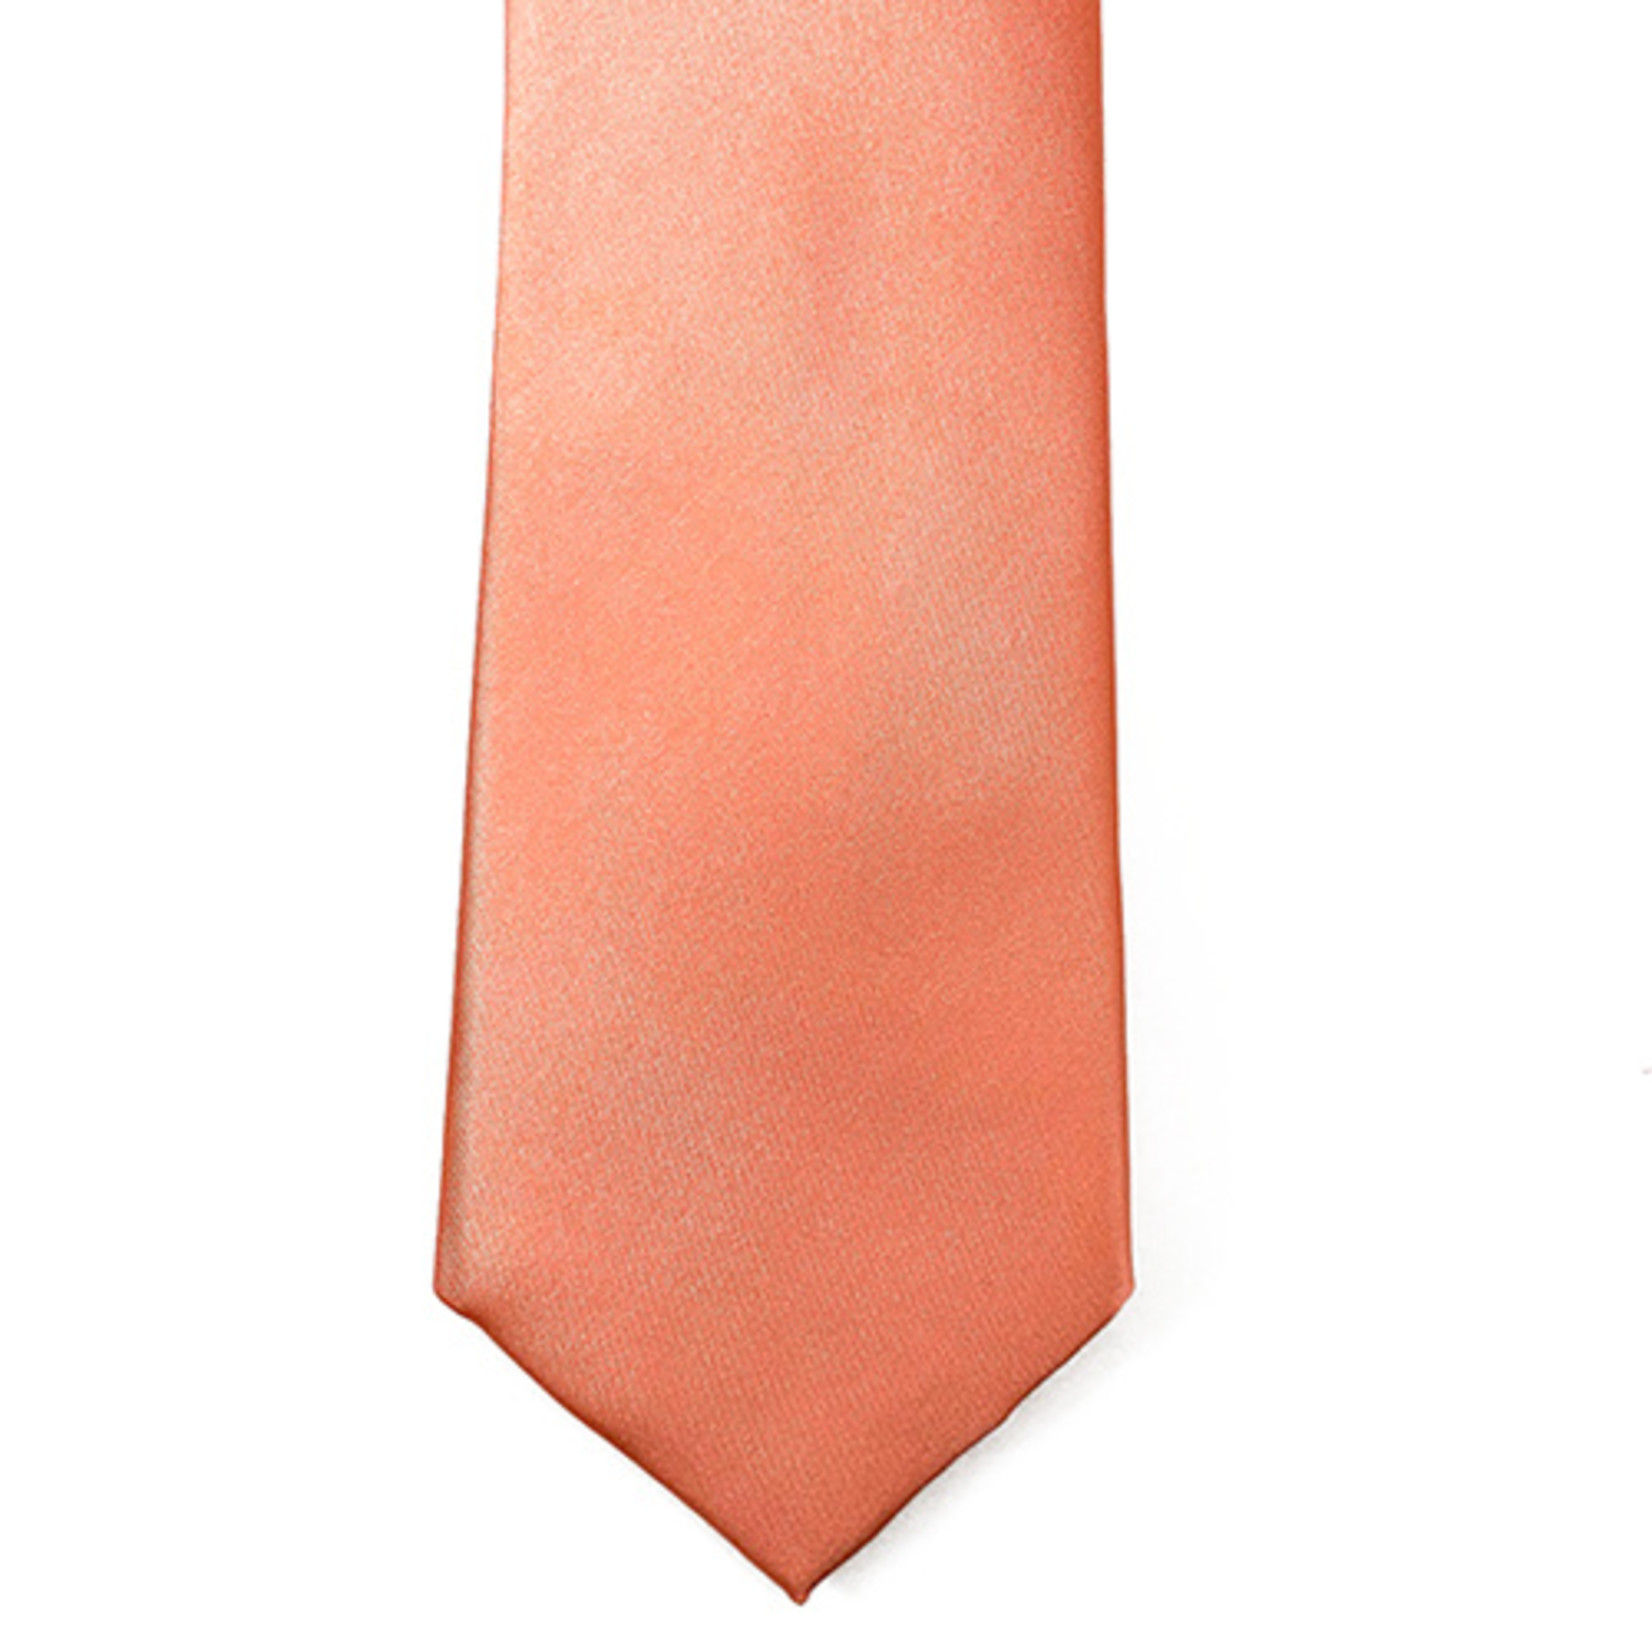 Knotz M100-63 Solid Light Coral Tie